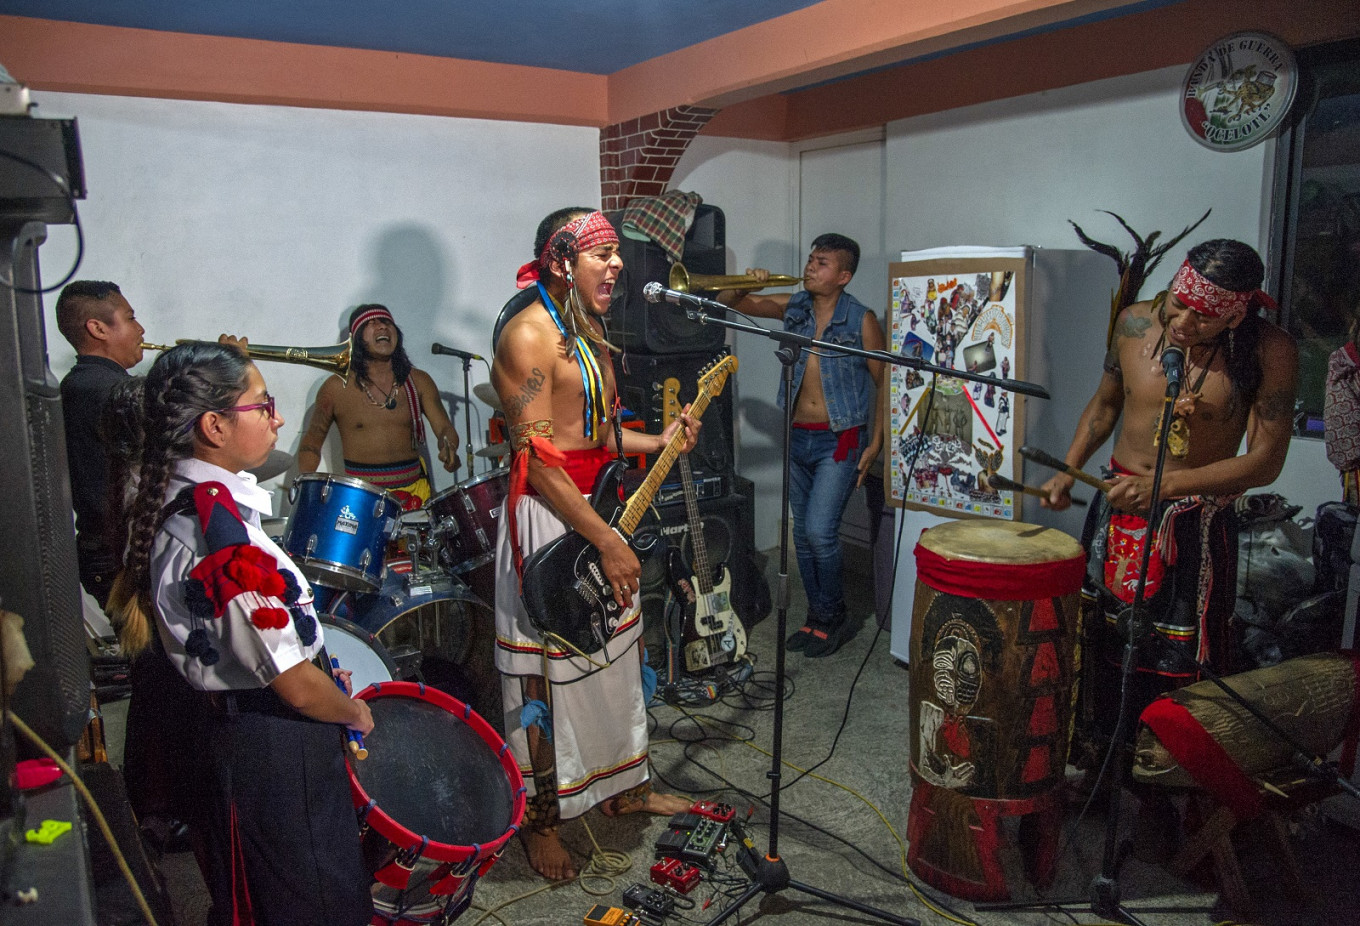 Mexican rockers blend punk with indigenous soul